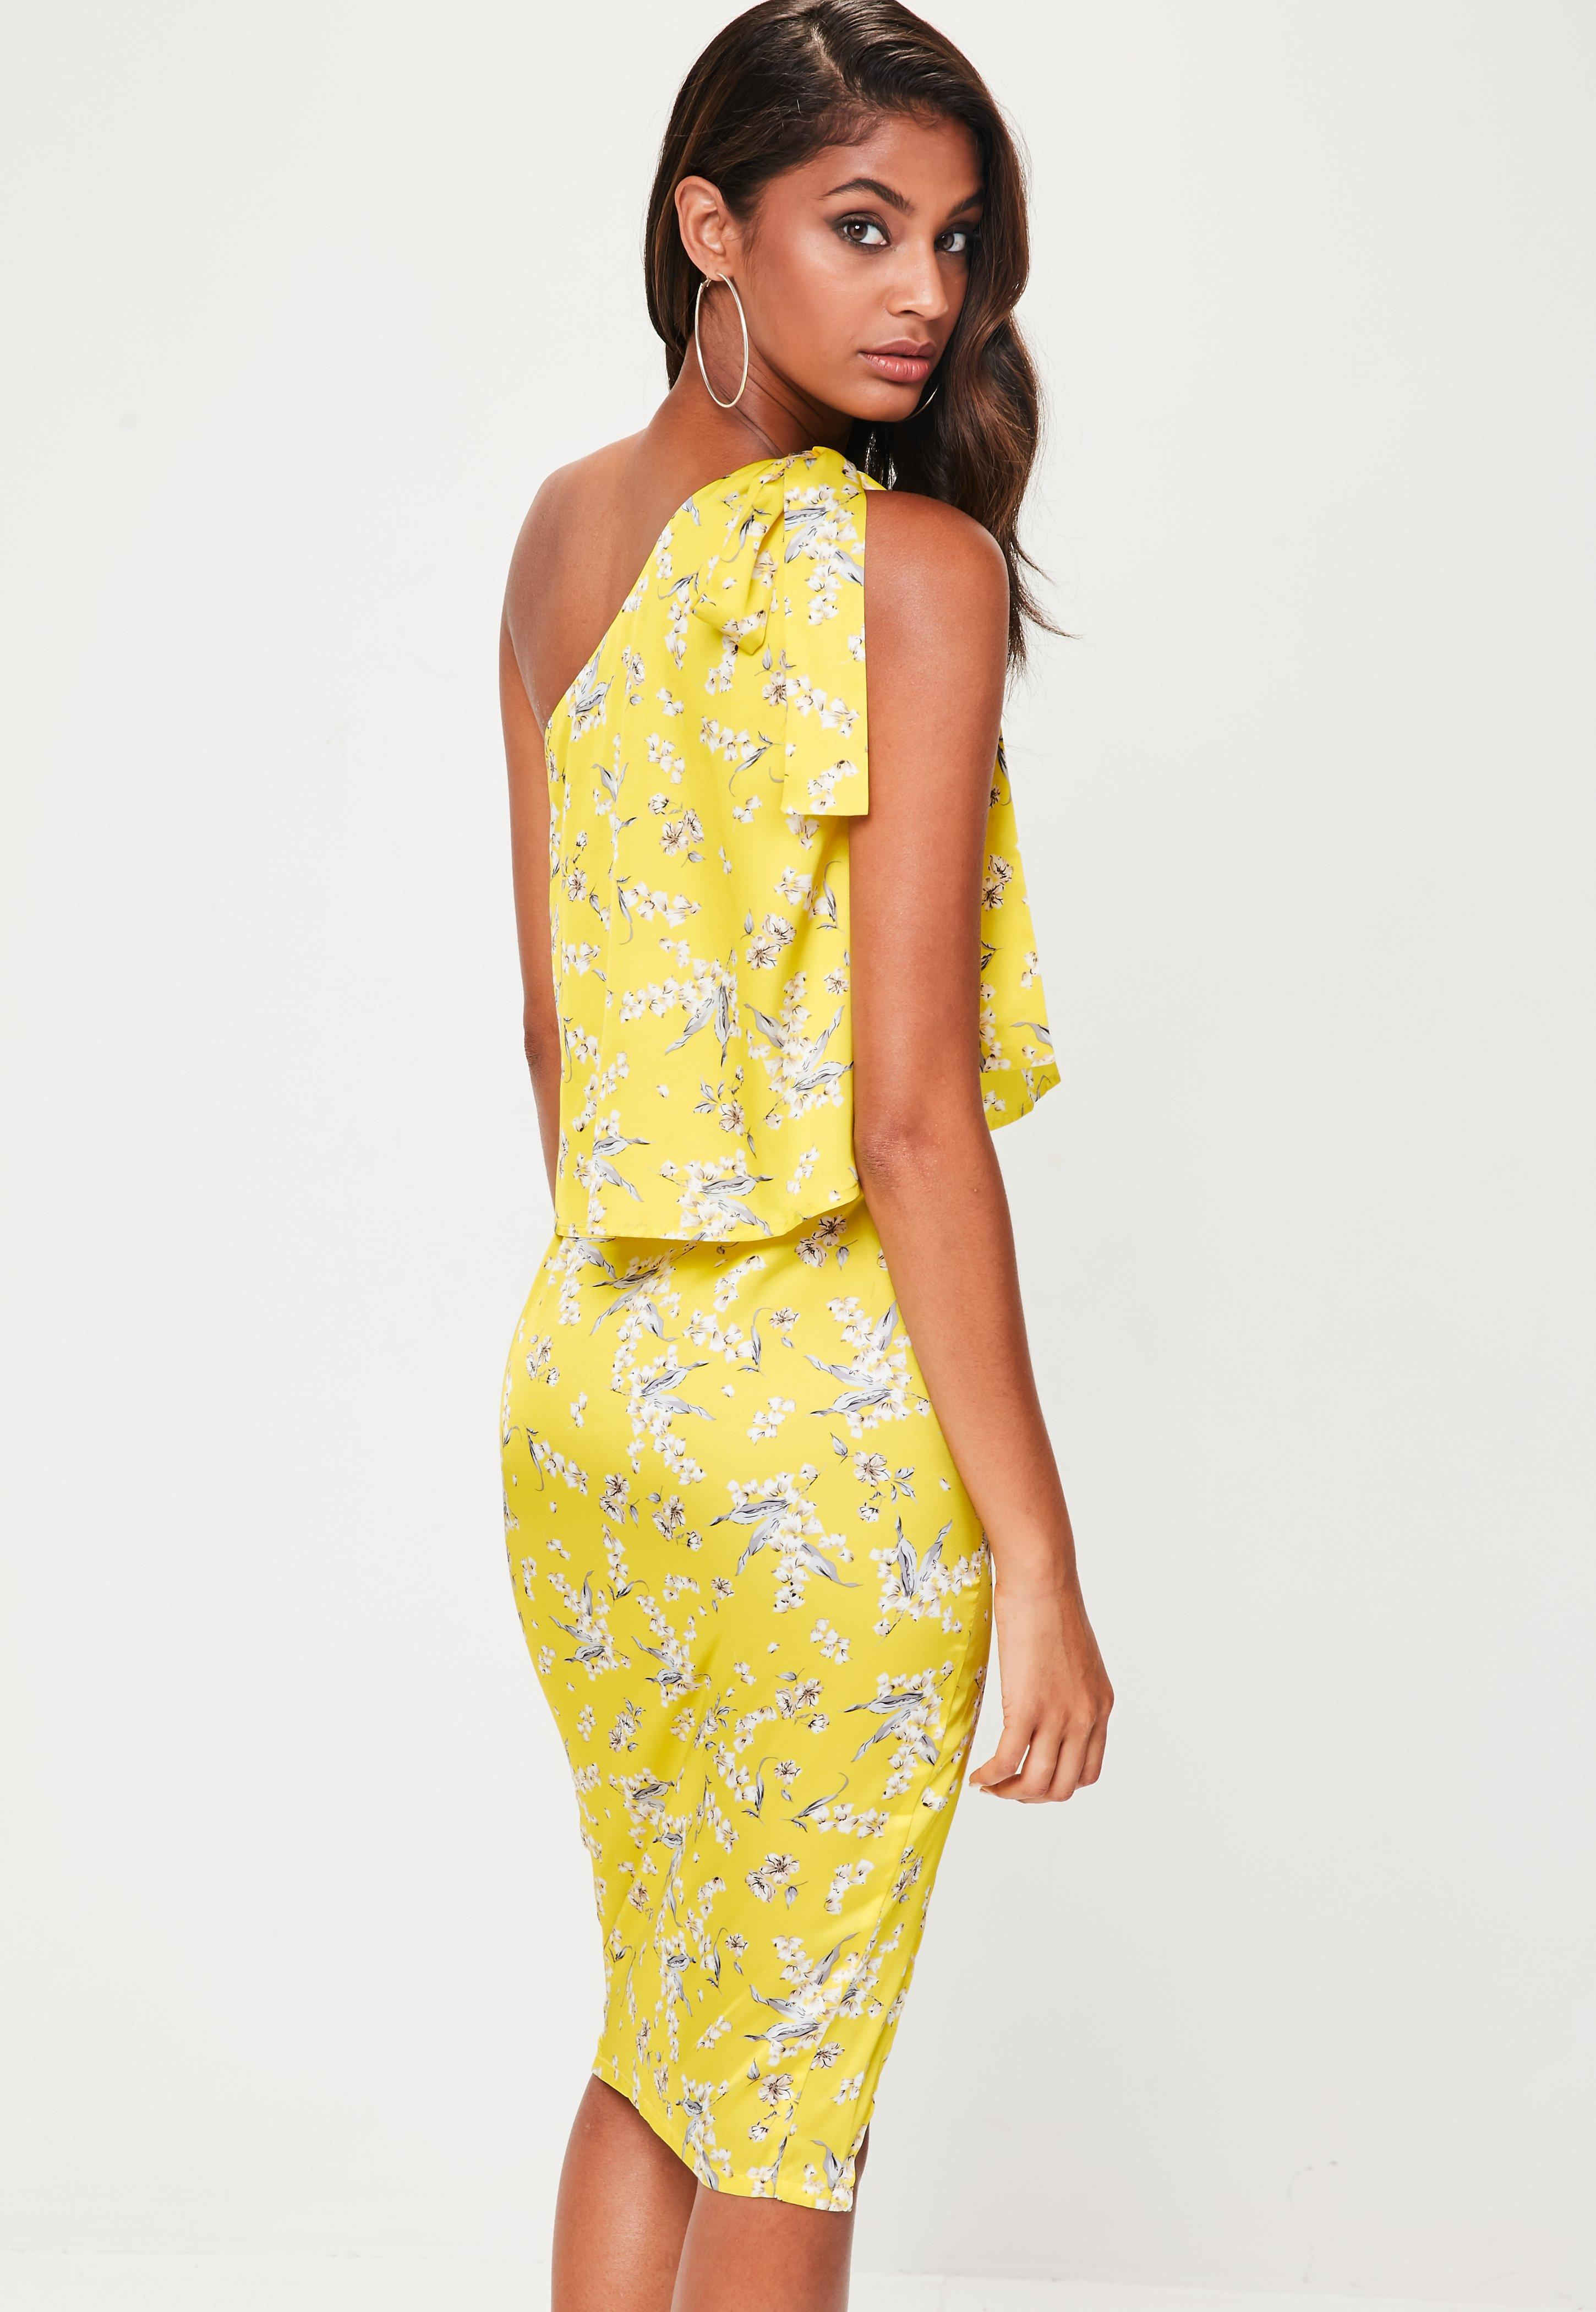 59e8aa781125 Missguided Yellow Floral One Shoulder Midi Dress in Yellow - Lyst